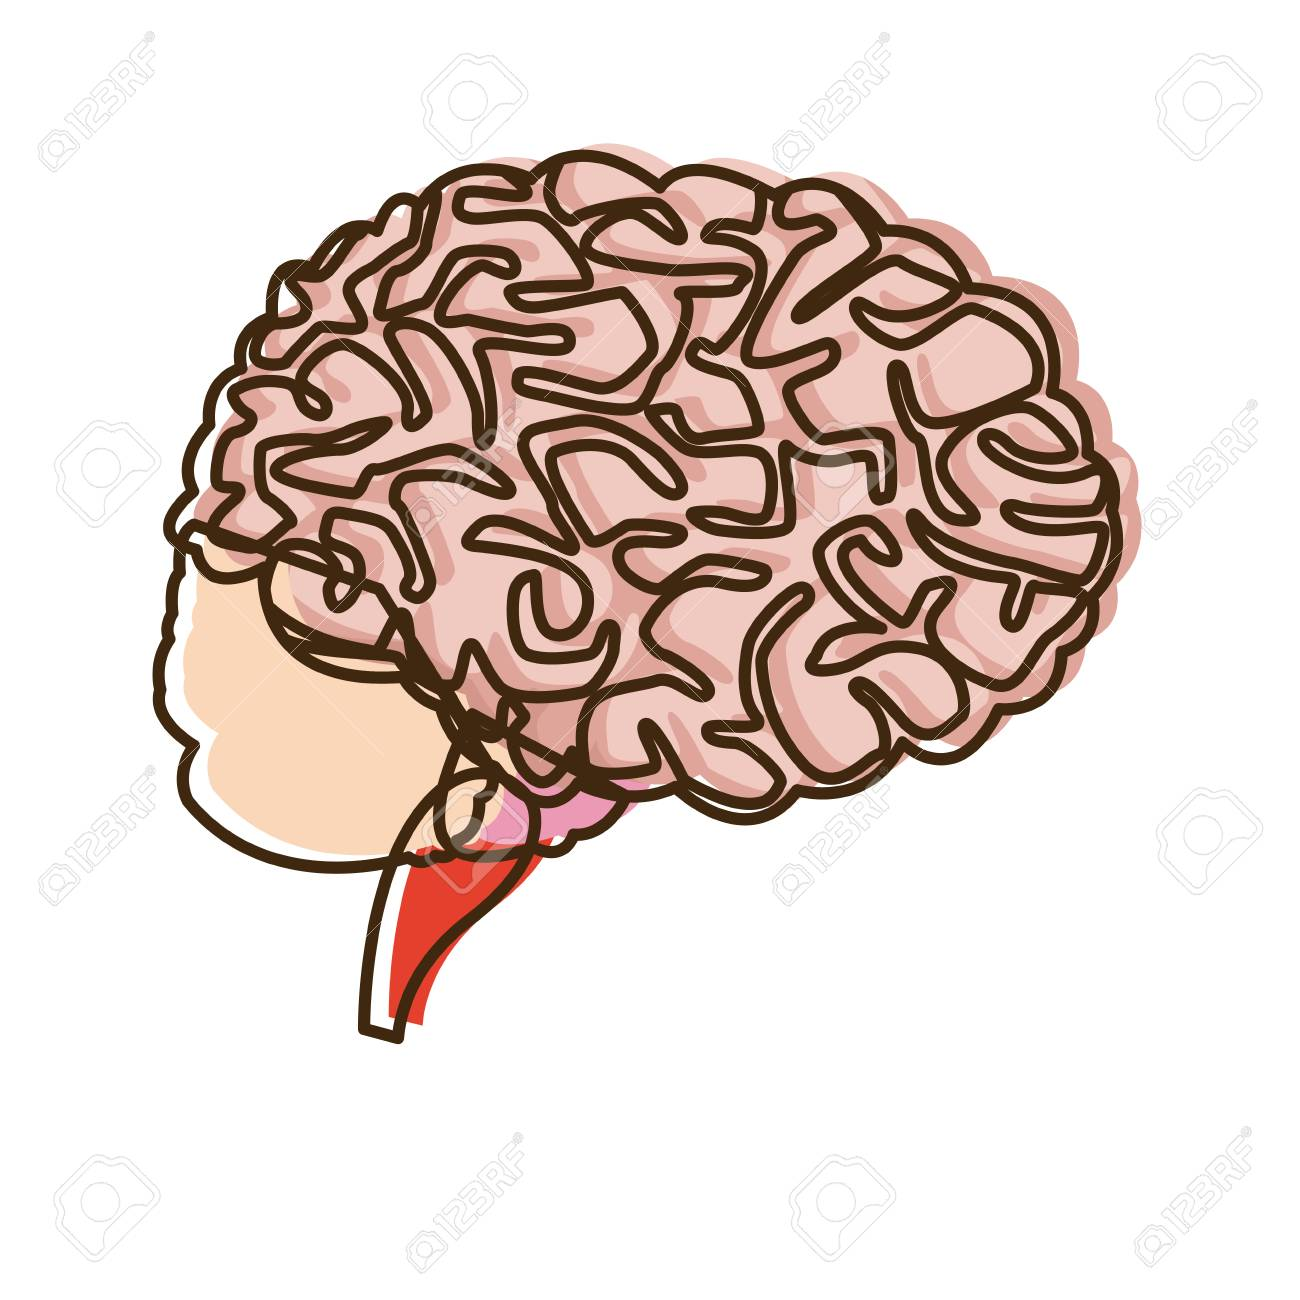 Human Brain For Medical Healthy Memory Anatomy Design Vector ...